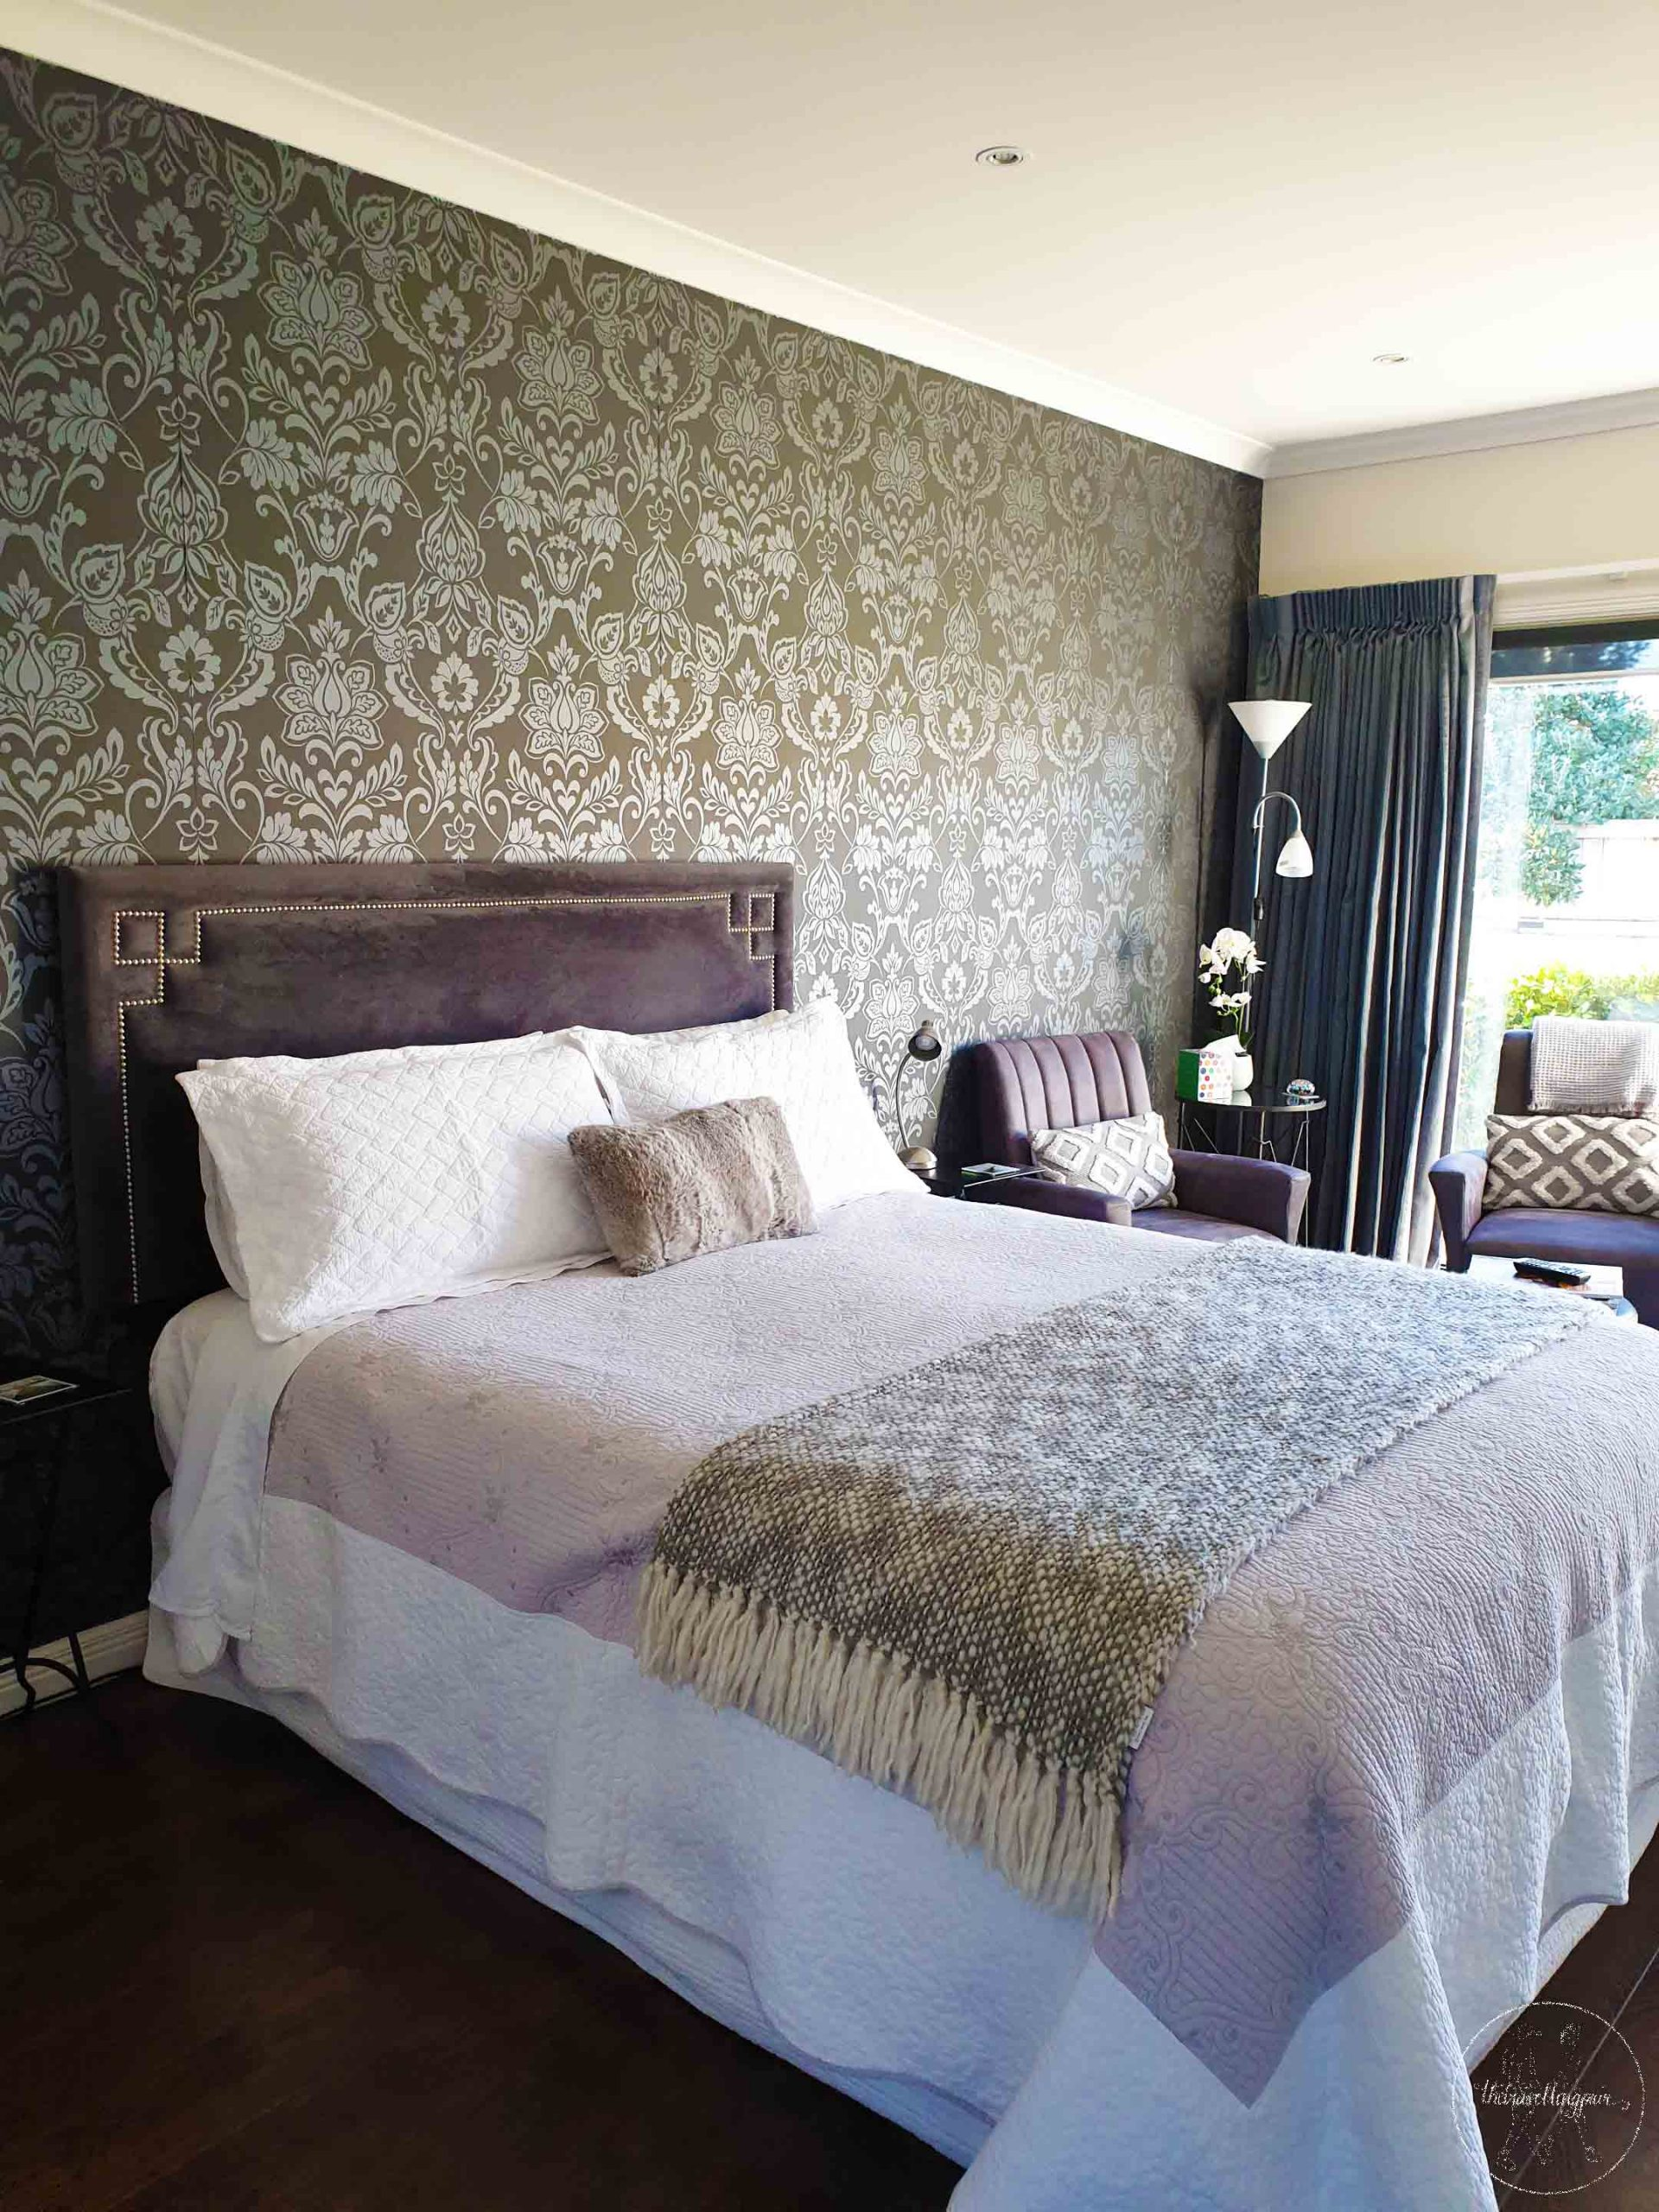 AirBNB Hawke's Bay - Join The Travelling Pair